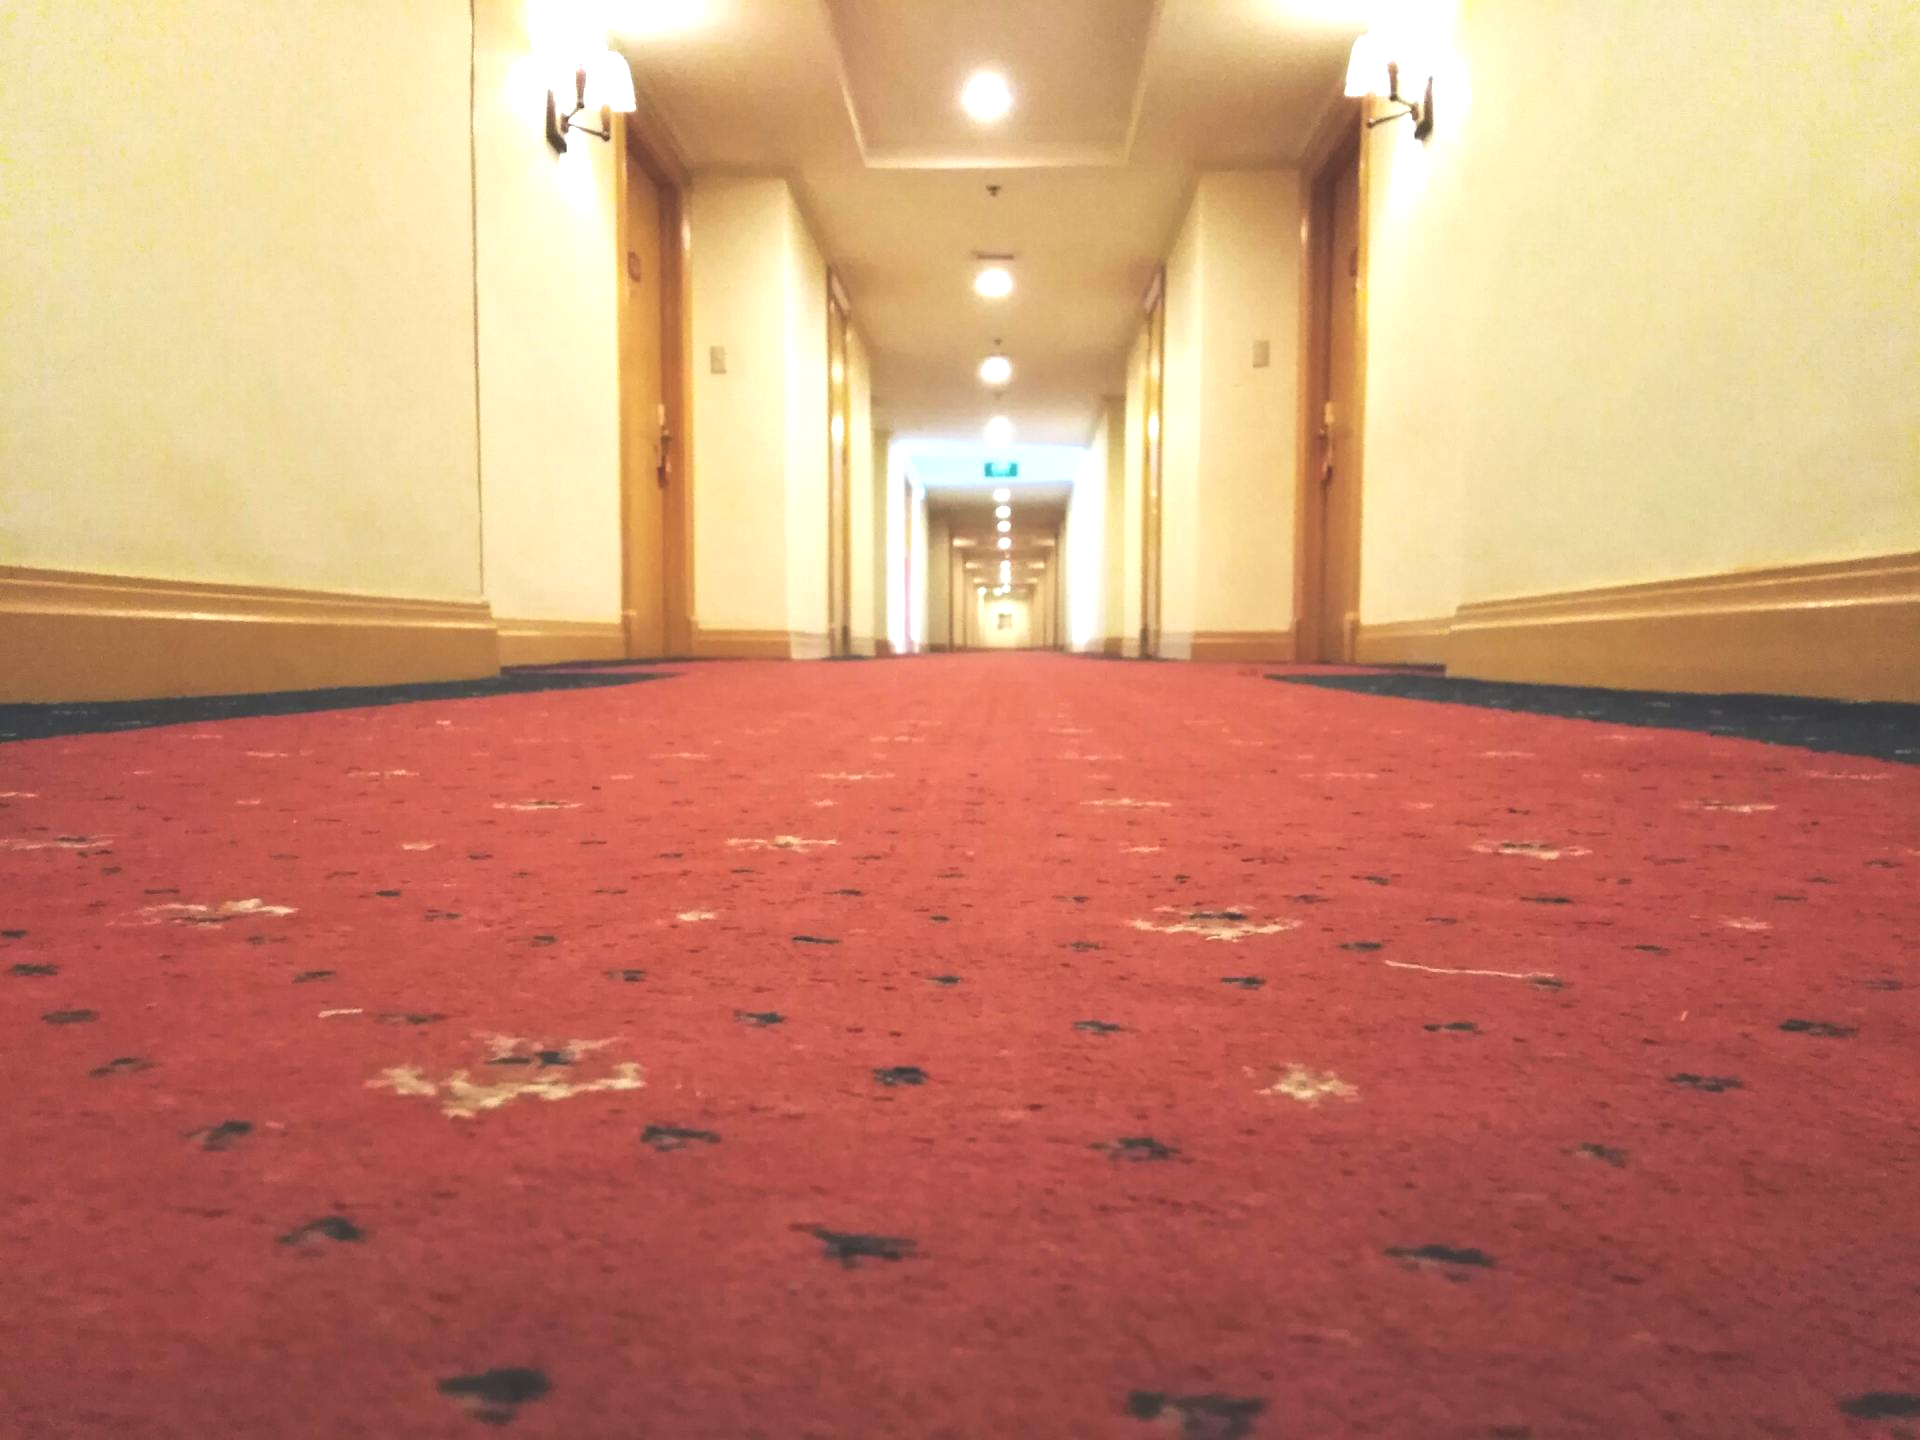 BEB Flooring & Cleaning does commercial Carpet Cleaning & Floor Maintenance in Raleigh, NC